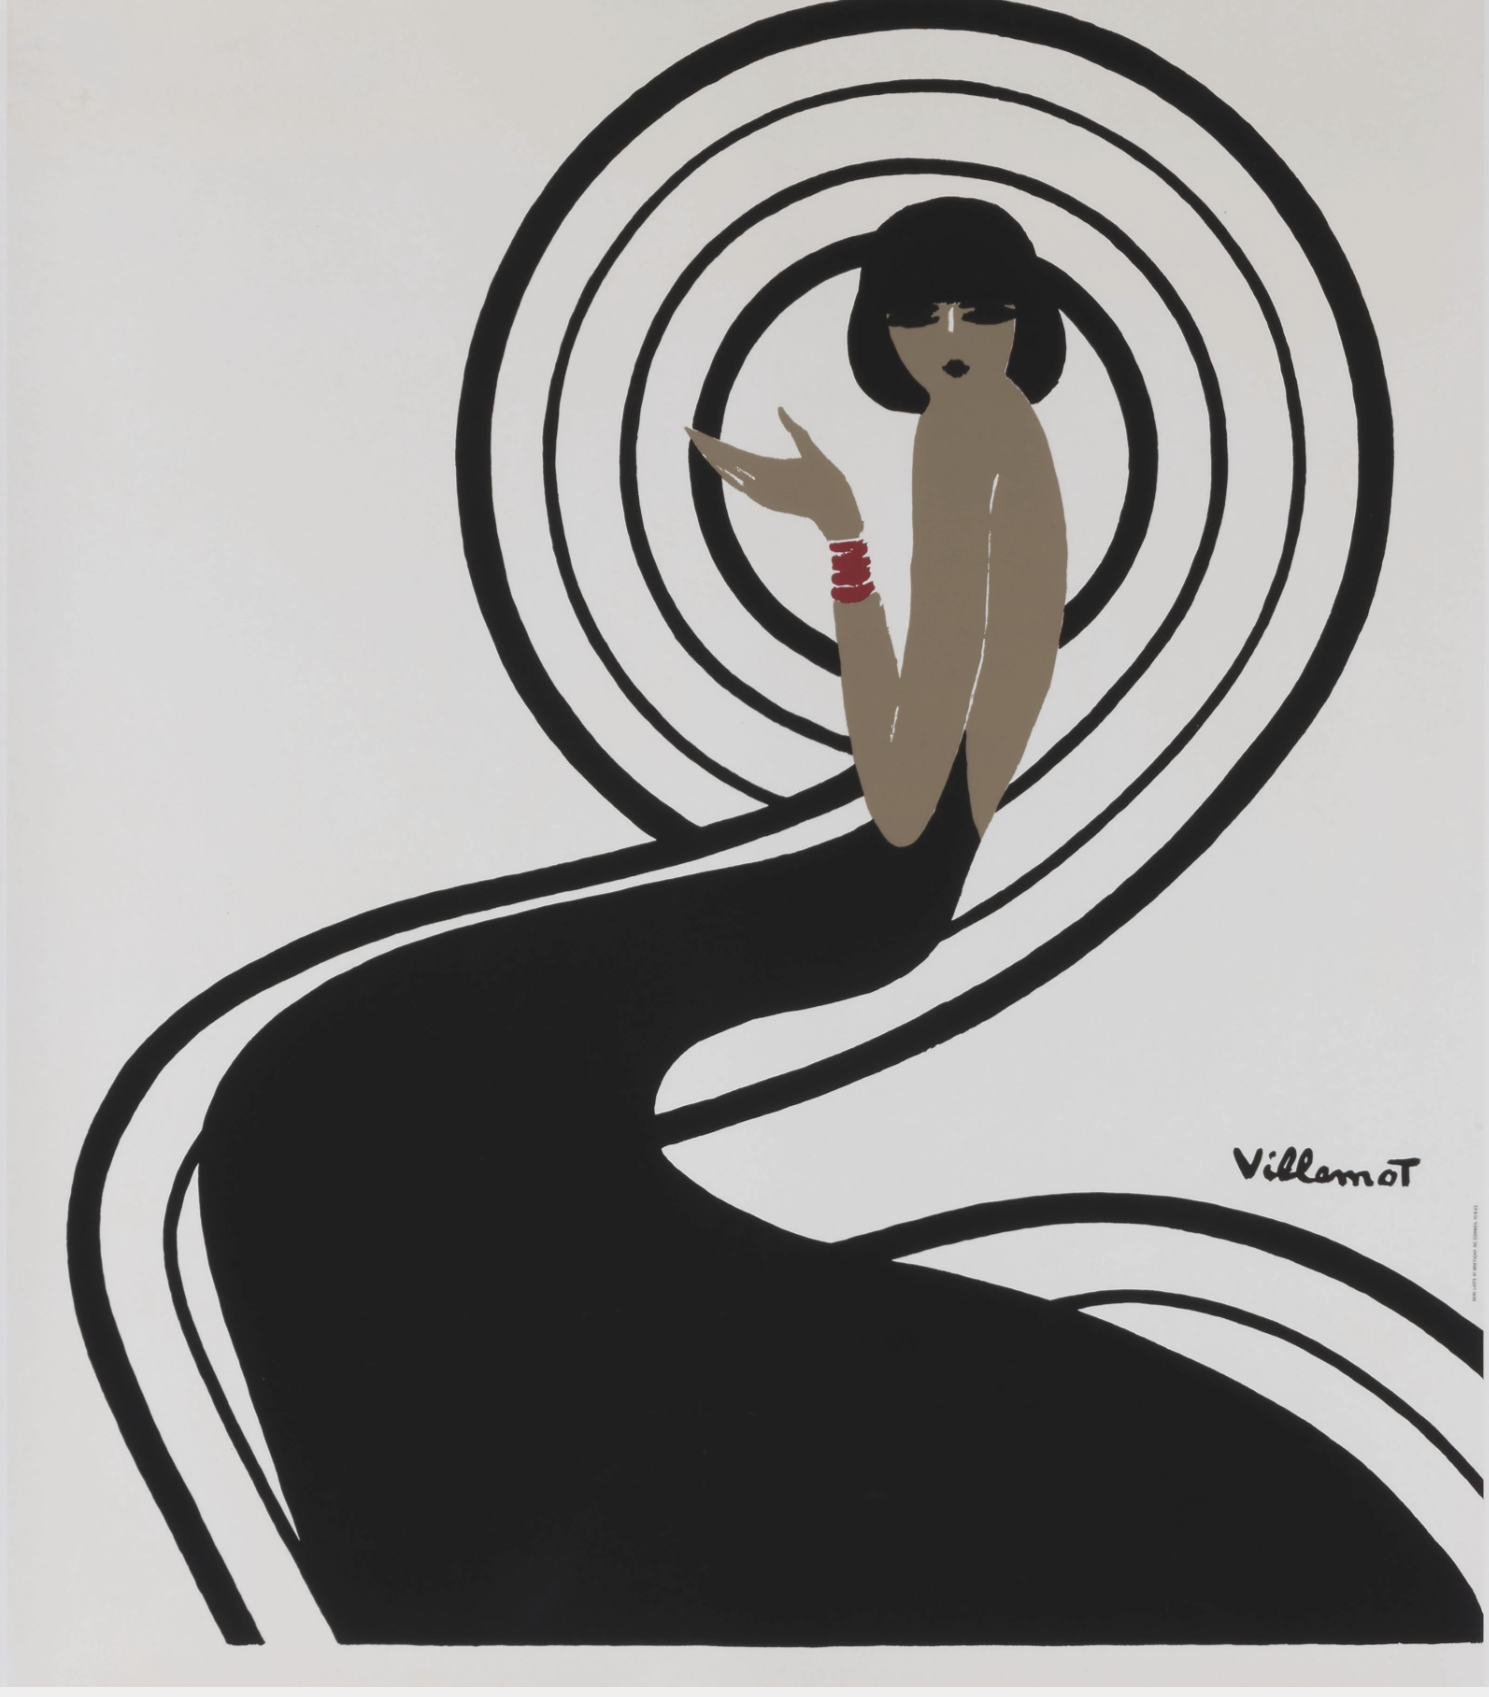 Villemot Spirale Black Dress Original Vintage Poster